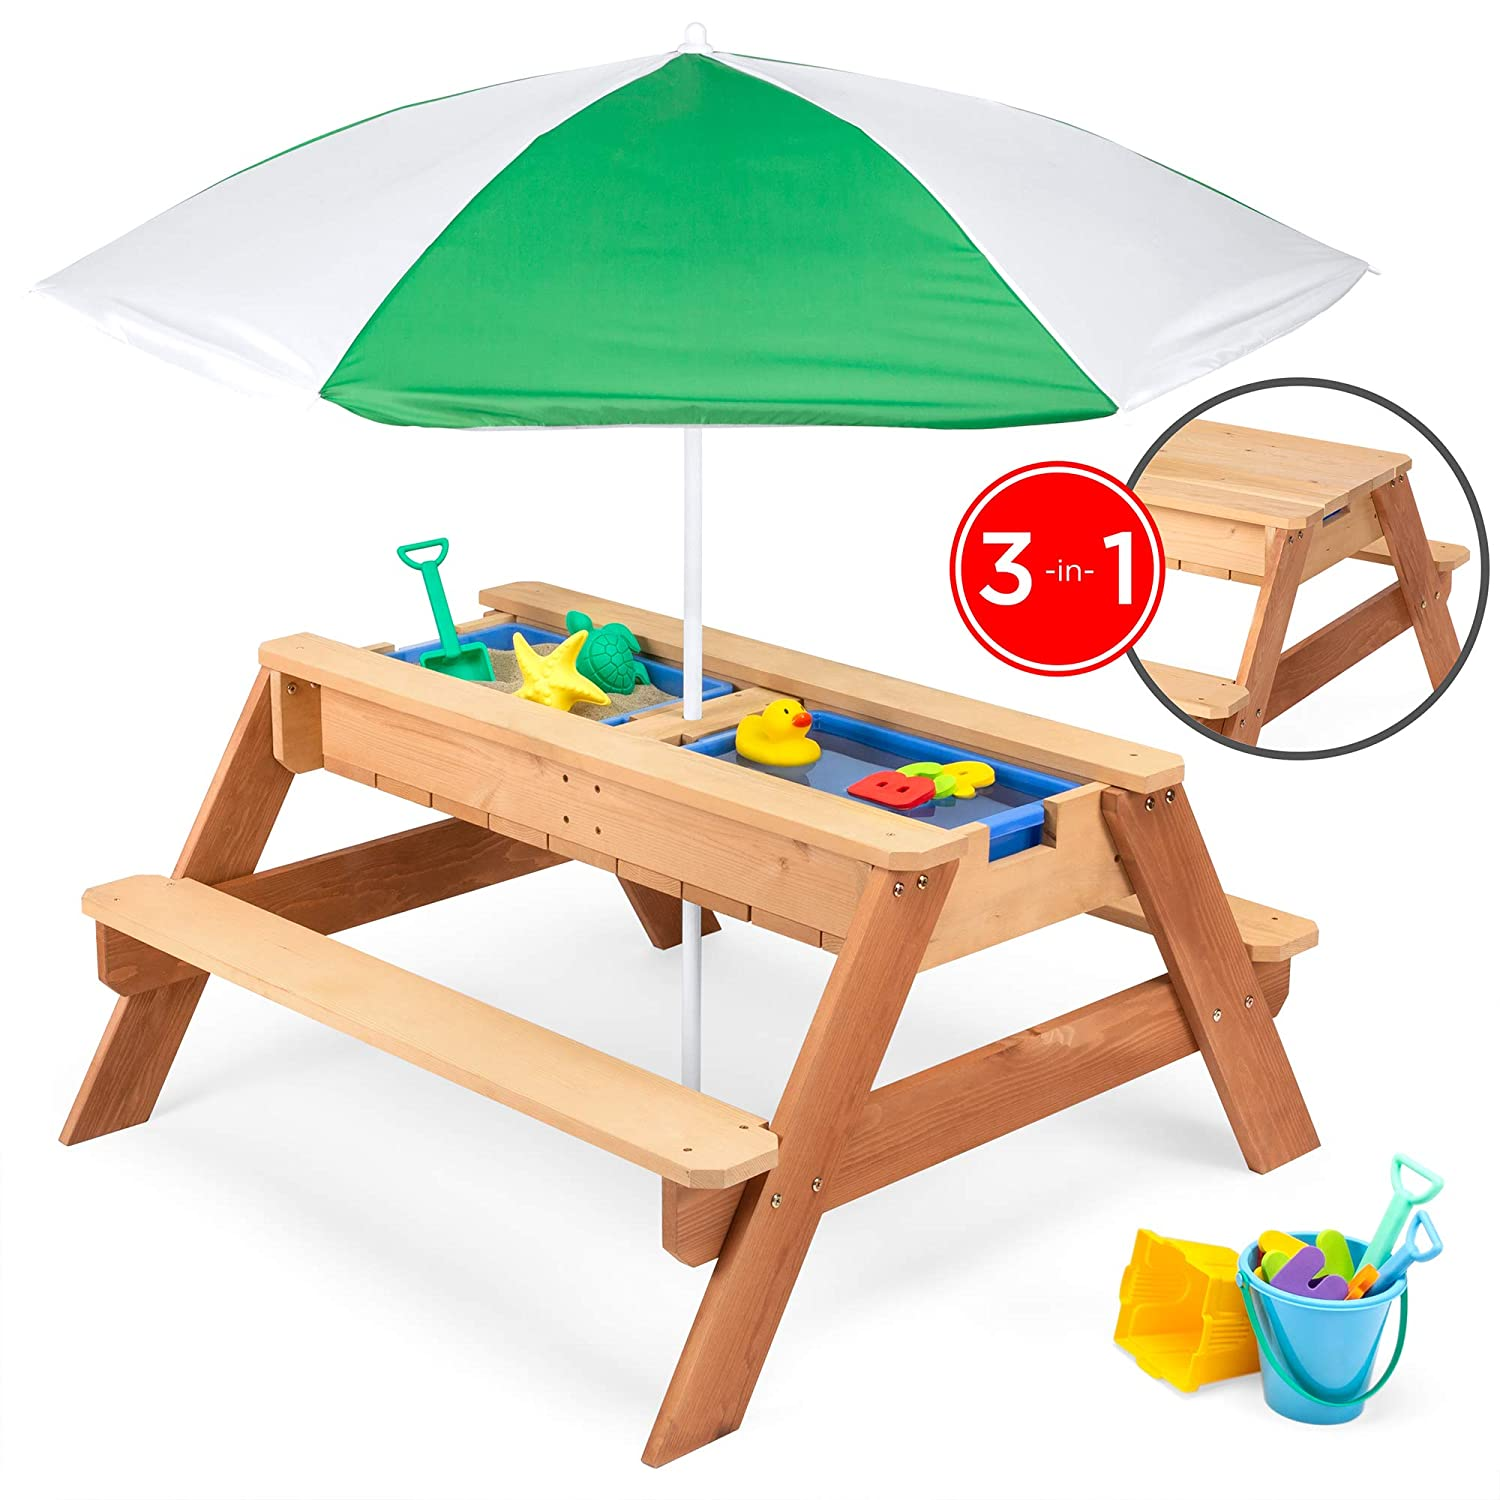 Best Choice Products Kids 3-In-1 Outdoor Wood Activity/Picnic Table W/ Umbrella und 2 spielen Boxes